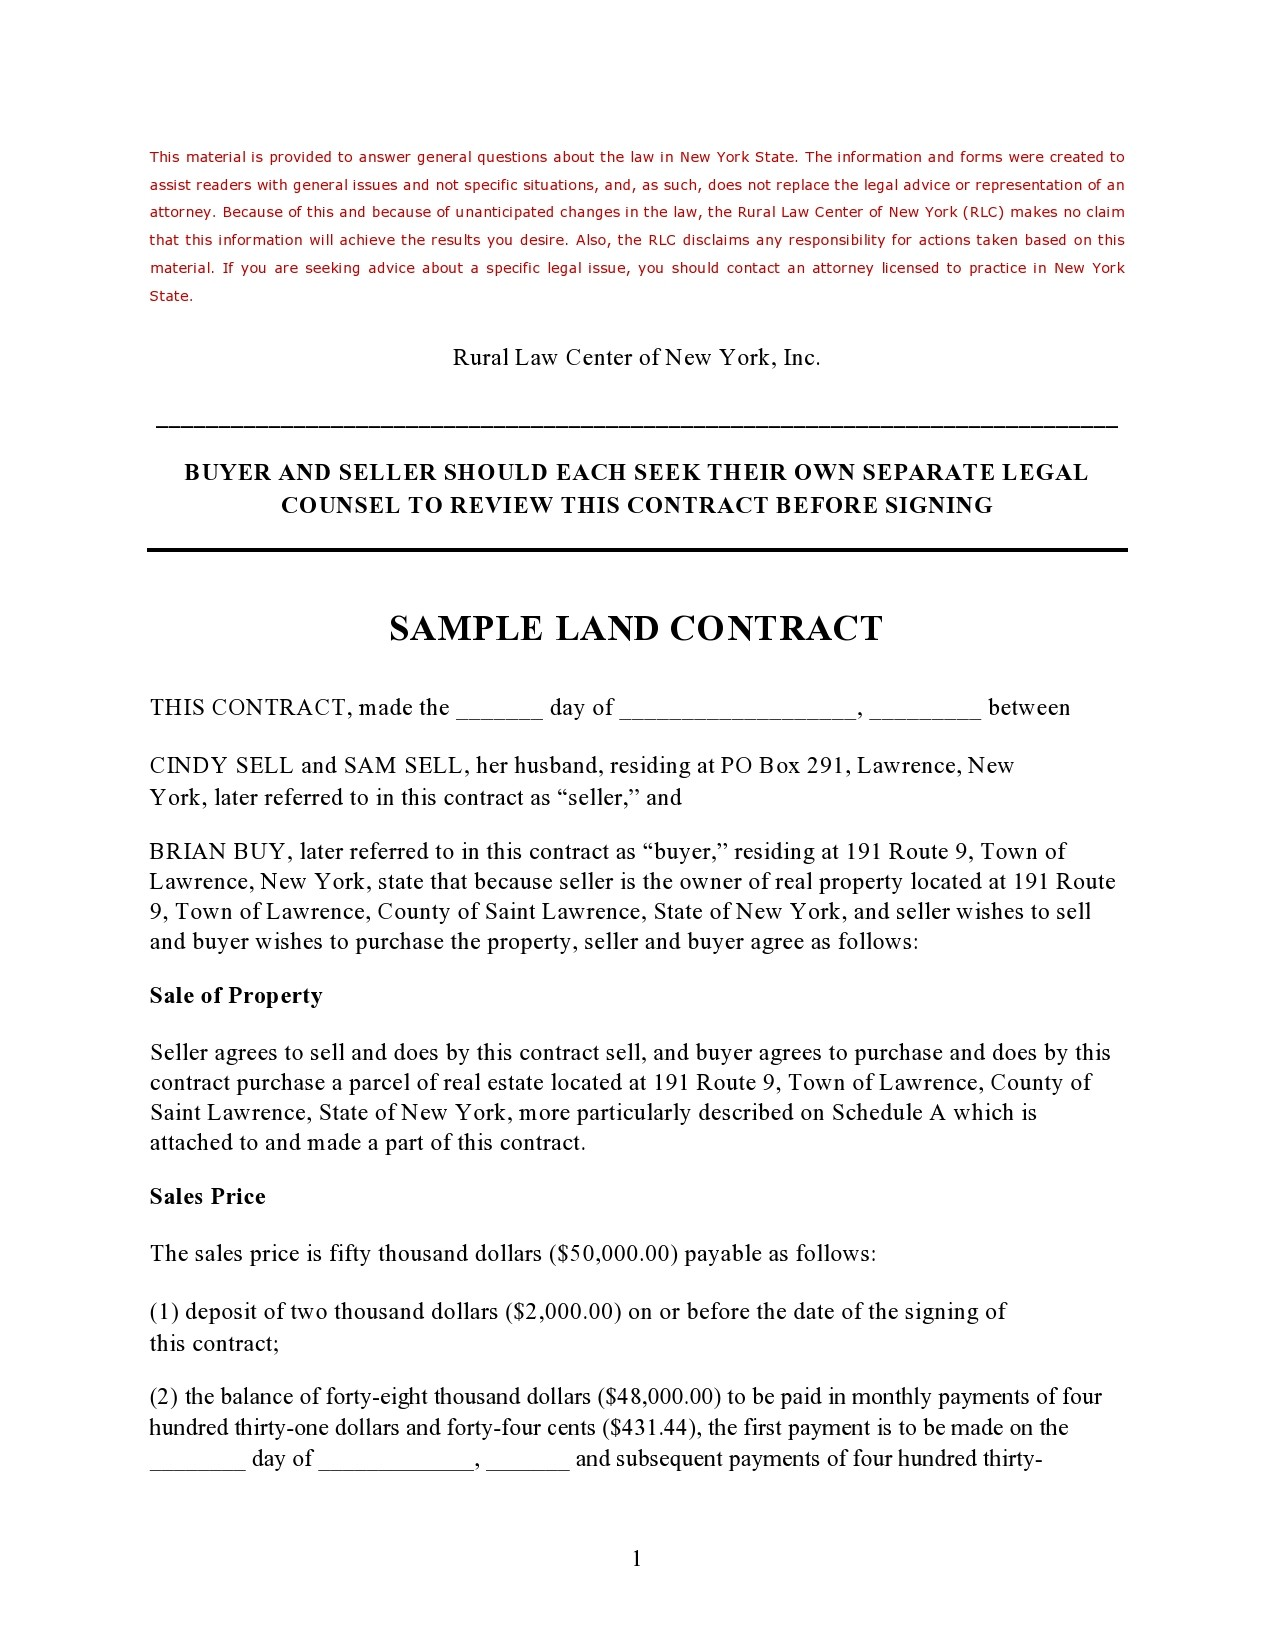 Free land contract form 07